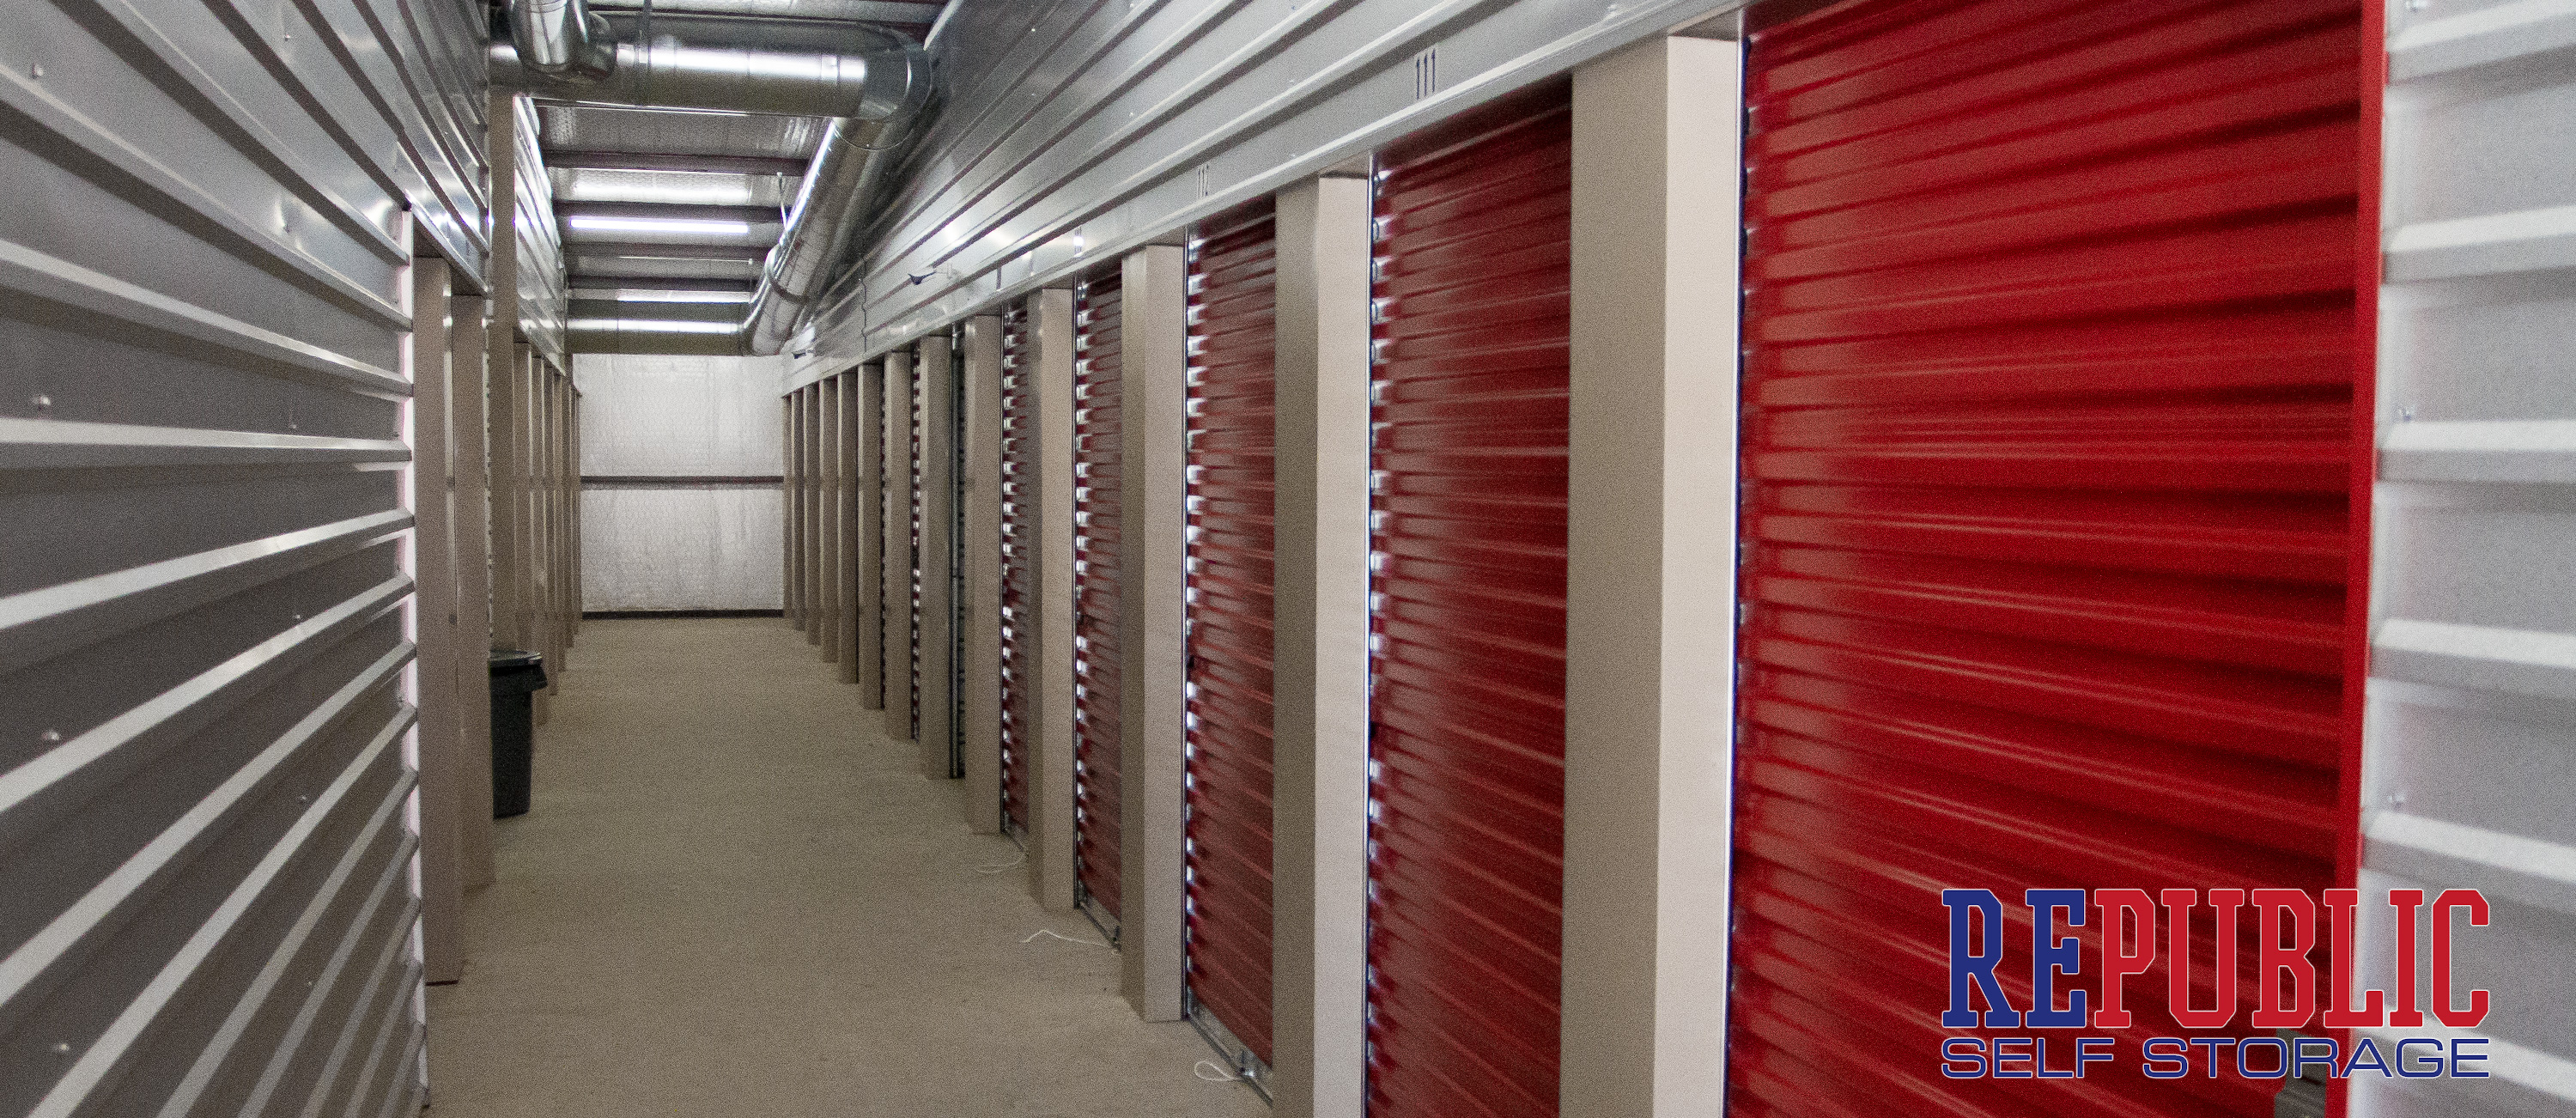 Store your belongs with Republic Self Storage in Tyler Texas